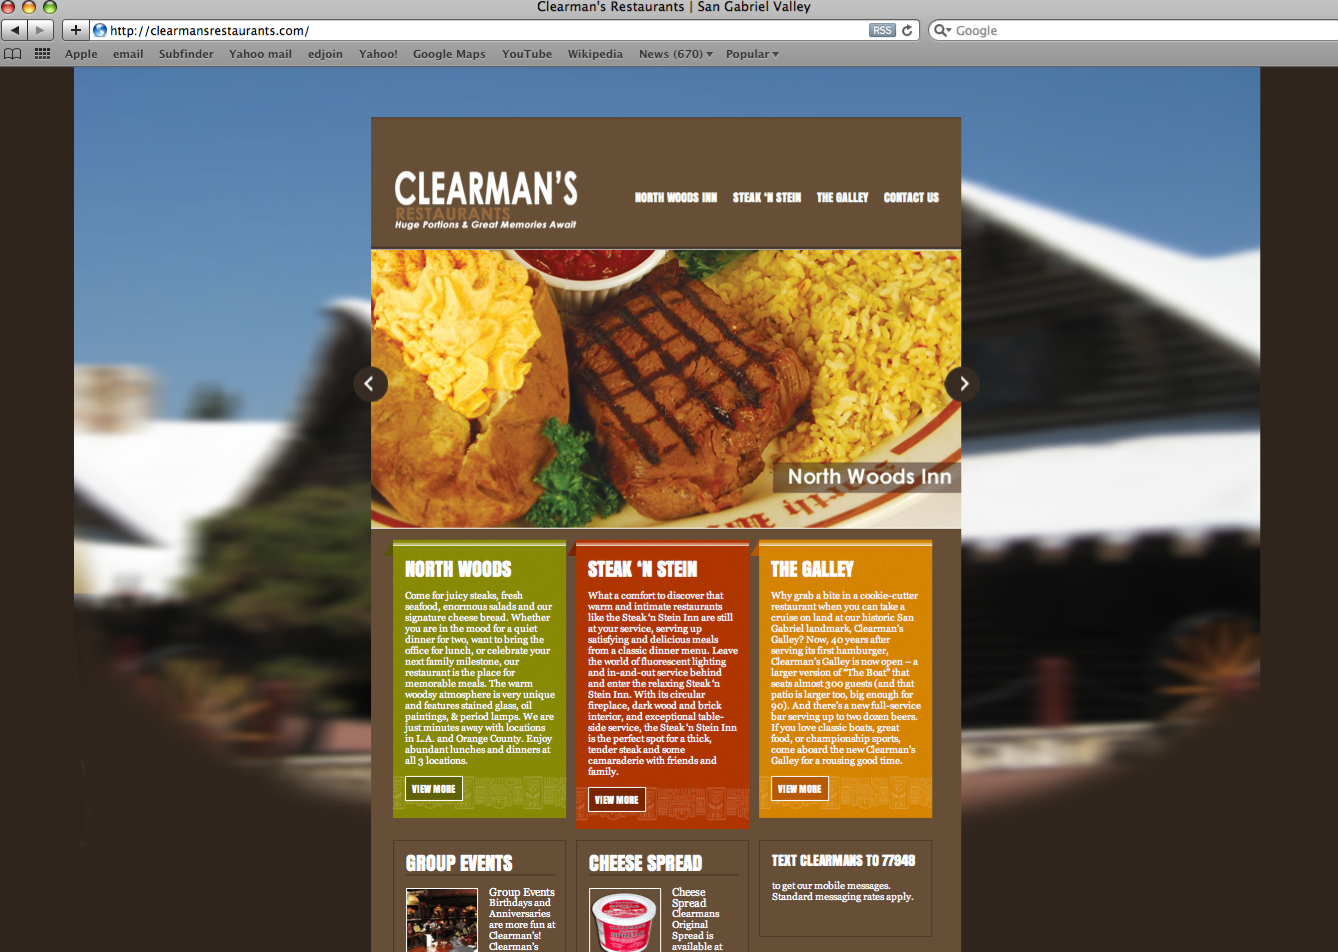 Website Design, Development and Maintenance - Clearmans